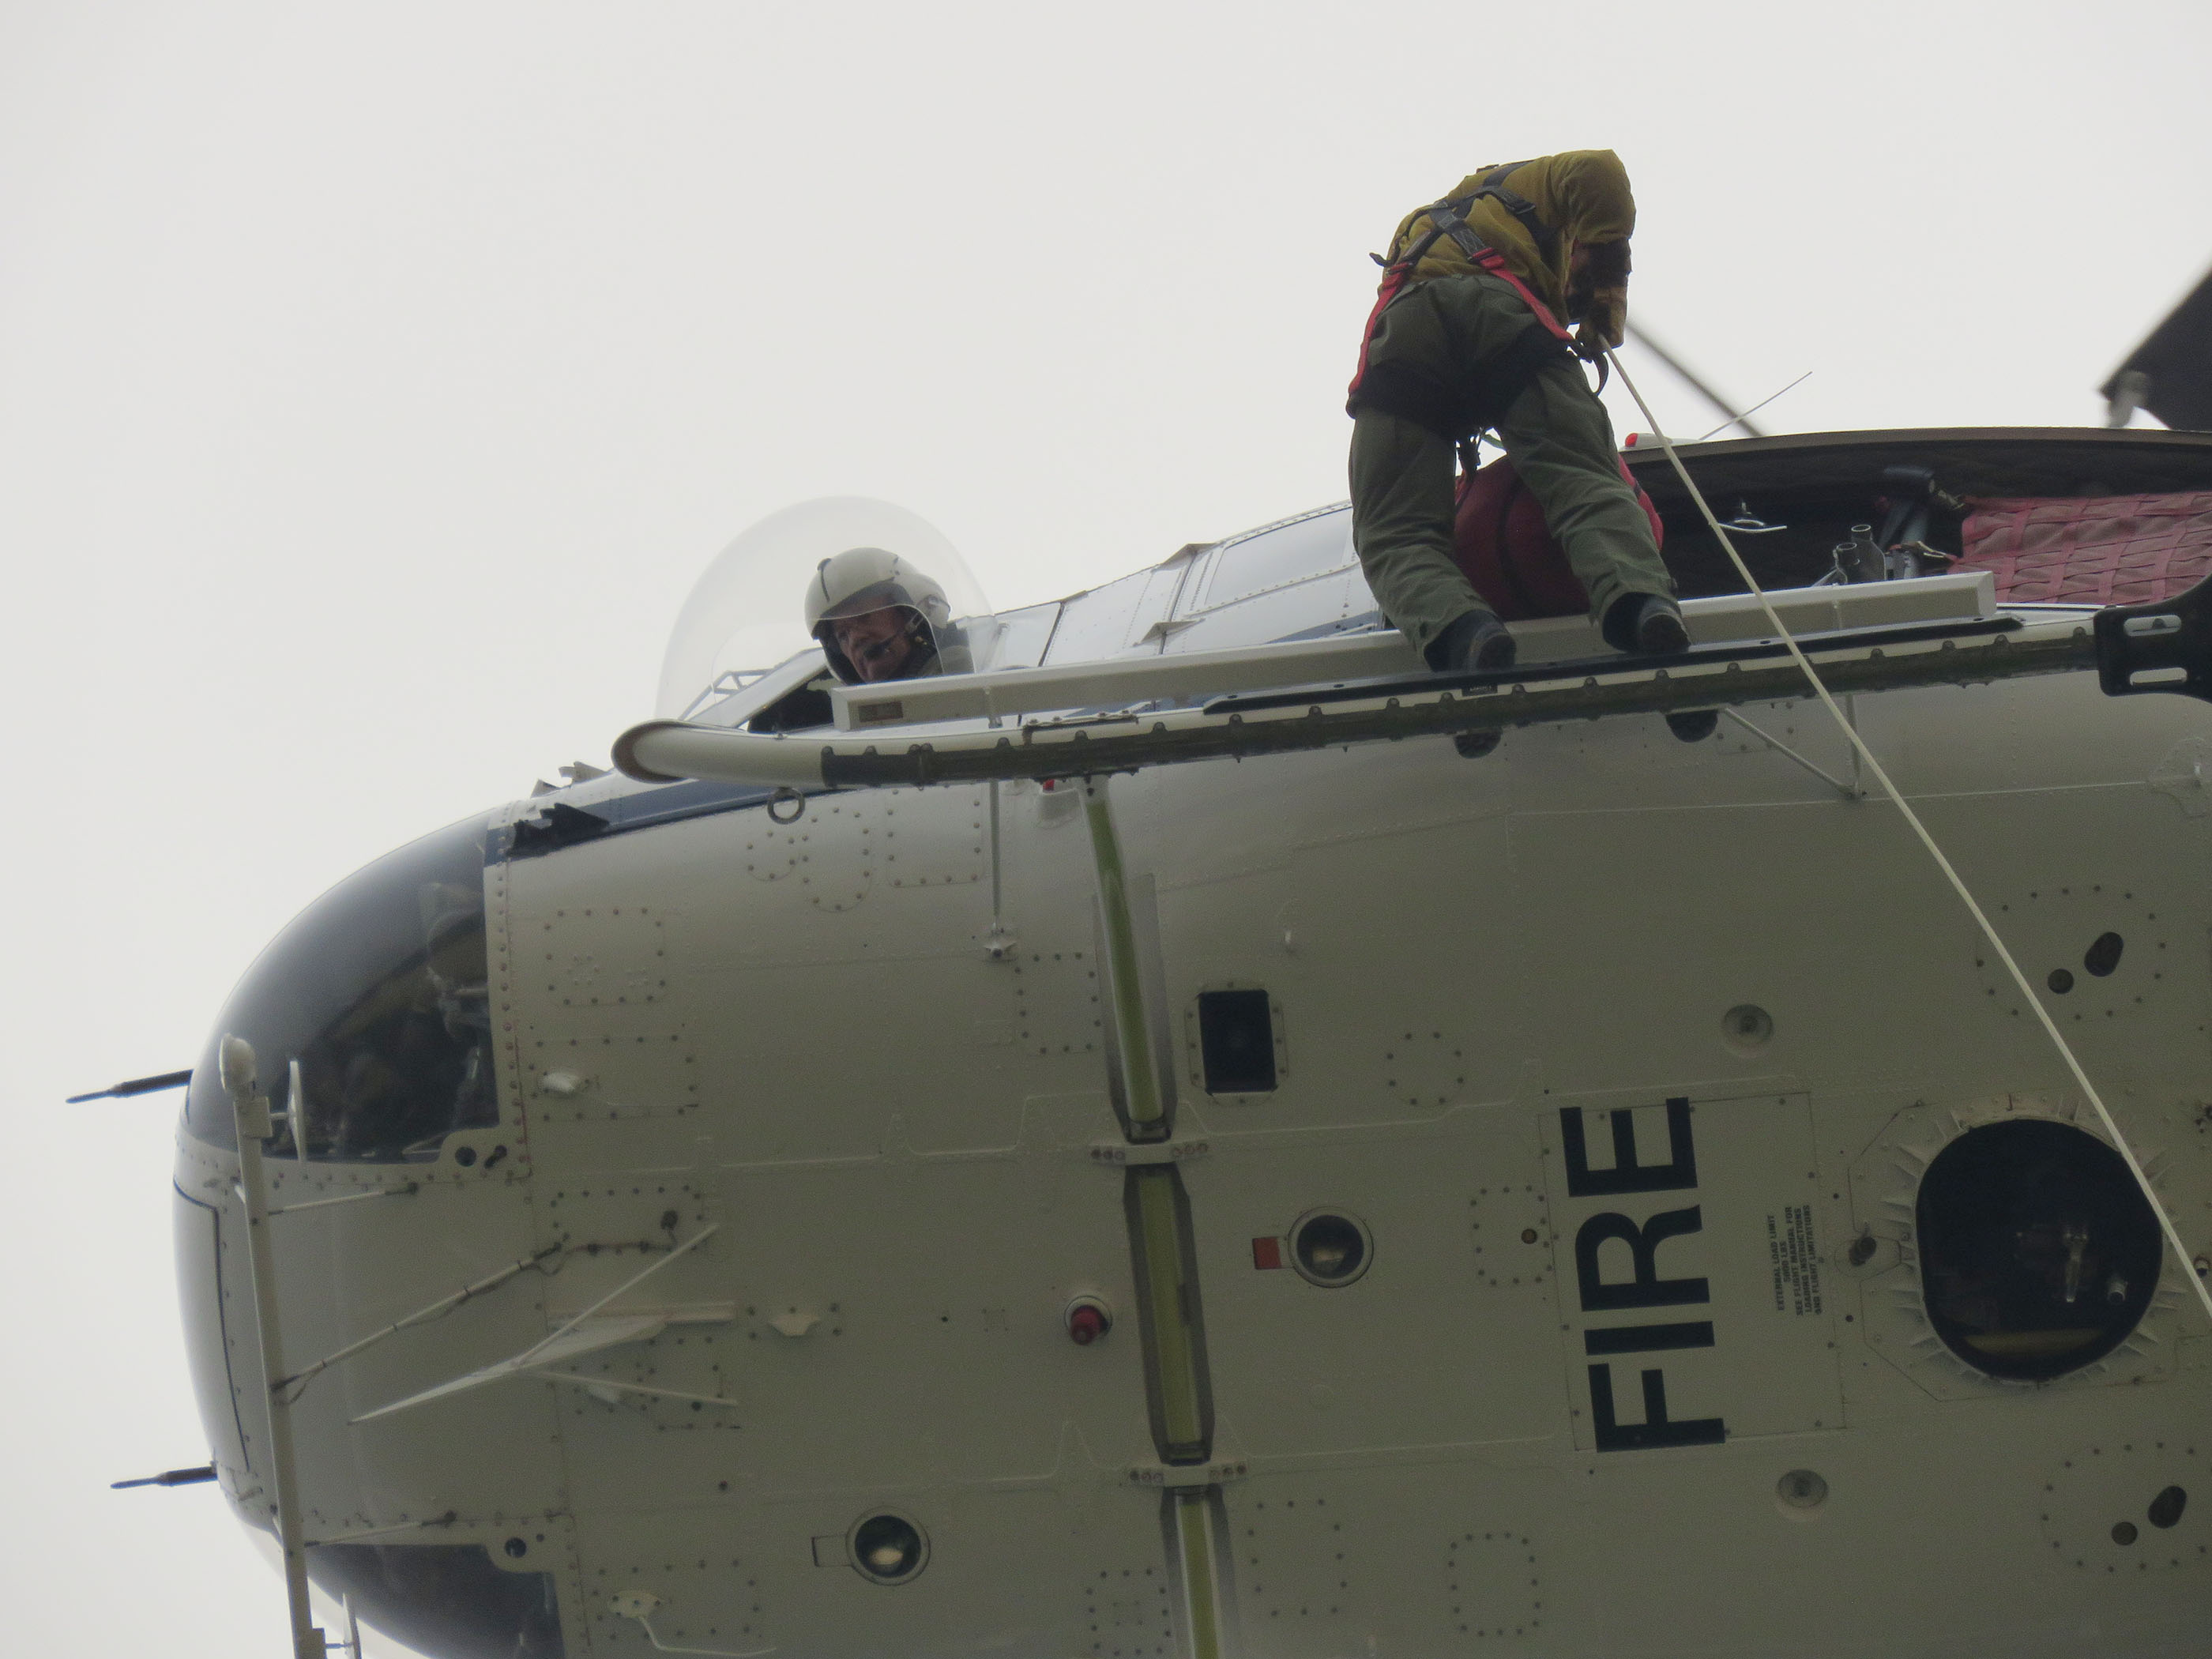 A firefighter standing on the skid of a helicopter prepares to descend on a rope as the pilot watches the ground from a window.